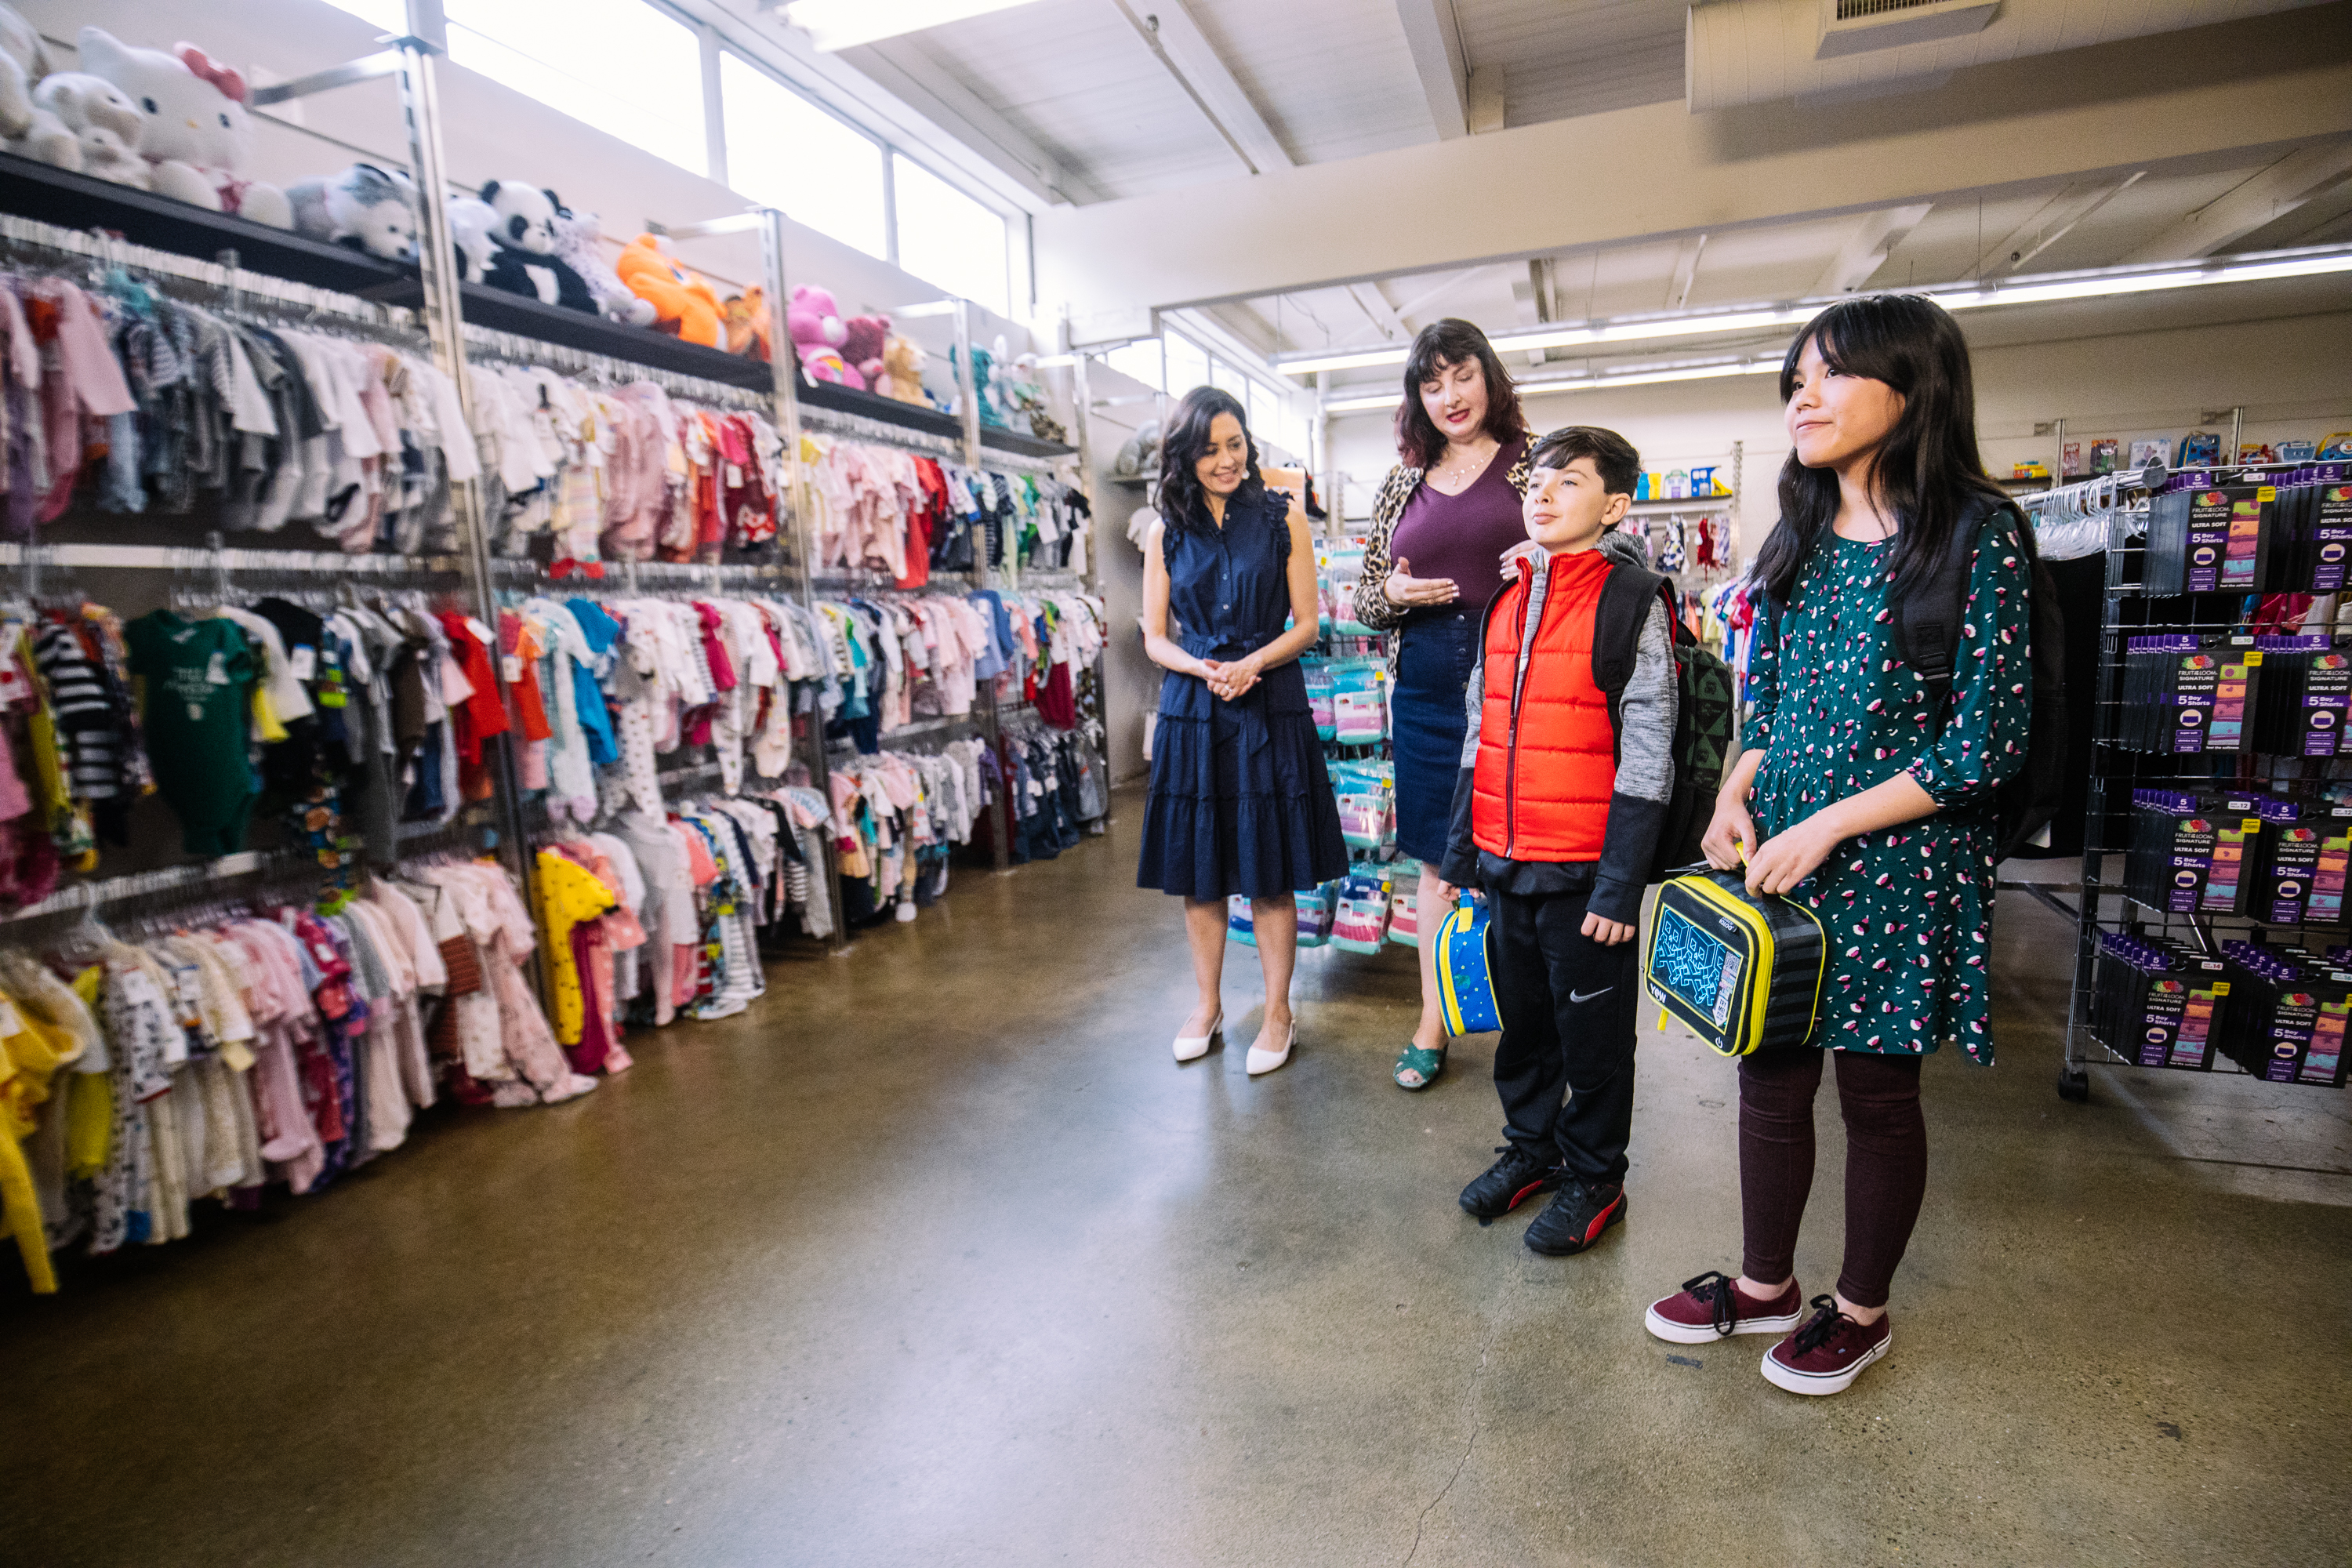 Seattle Goodwill is a great place for families to score the trendiest looks for back to school. That includes retro modern, flannel and  comfy cool! Plus Goodwill has new items for sale too, including backpacks and lunch boxes. (Photo: Seattle Goodwill){&nbsp;}<p></p>